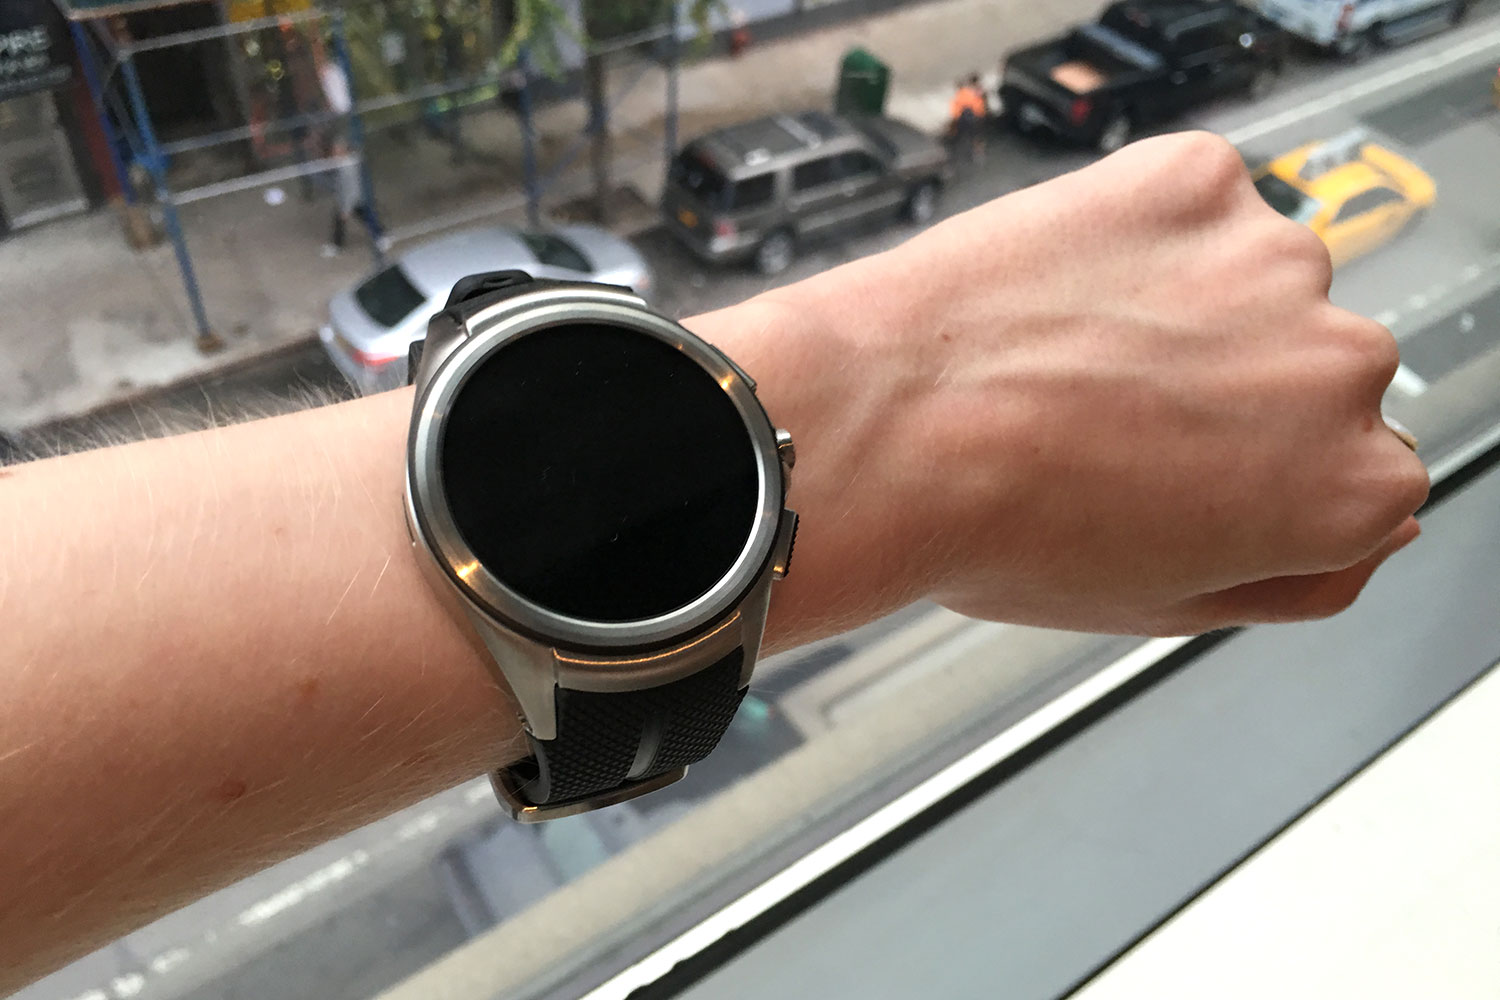 lg smartwatch. a new lg smartwatch featuring android wear just earned fcc certification lg